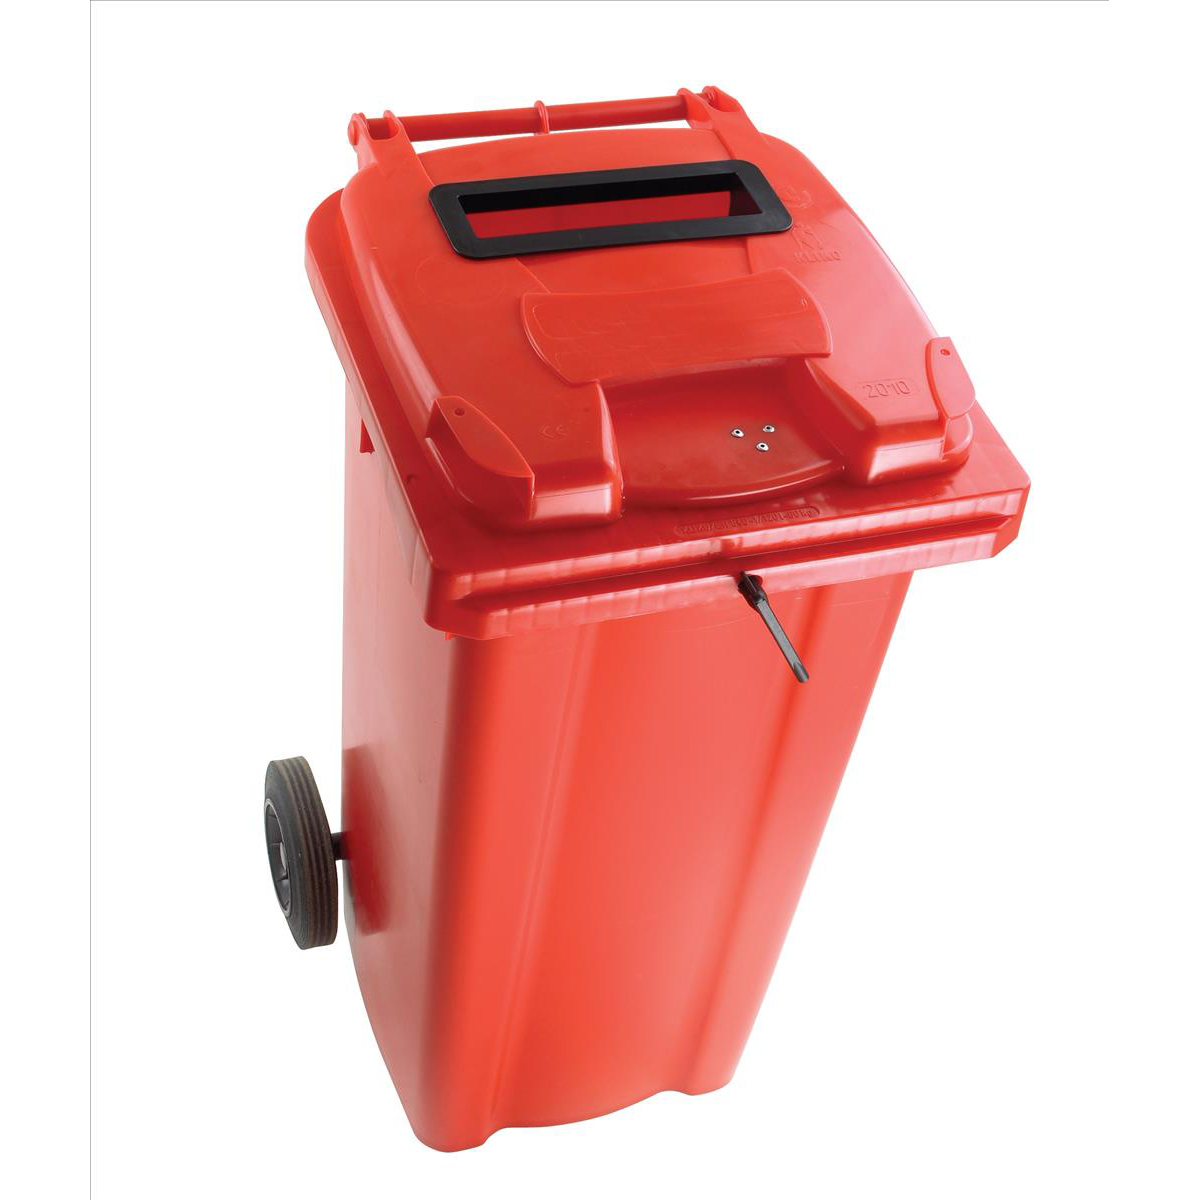 Wheeled Bin UV Stabilised Polyethylene with Rear Wheels Lid Lock 140 Litre Capacity 480x555x1070mm Red